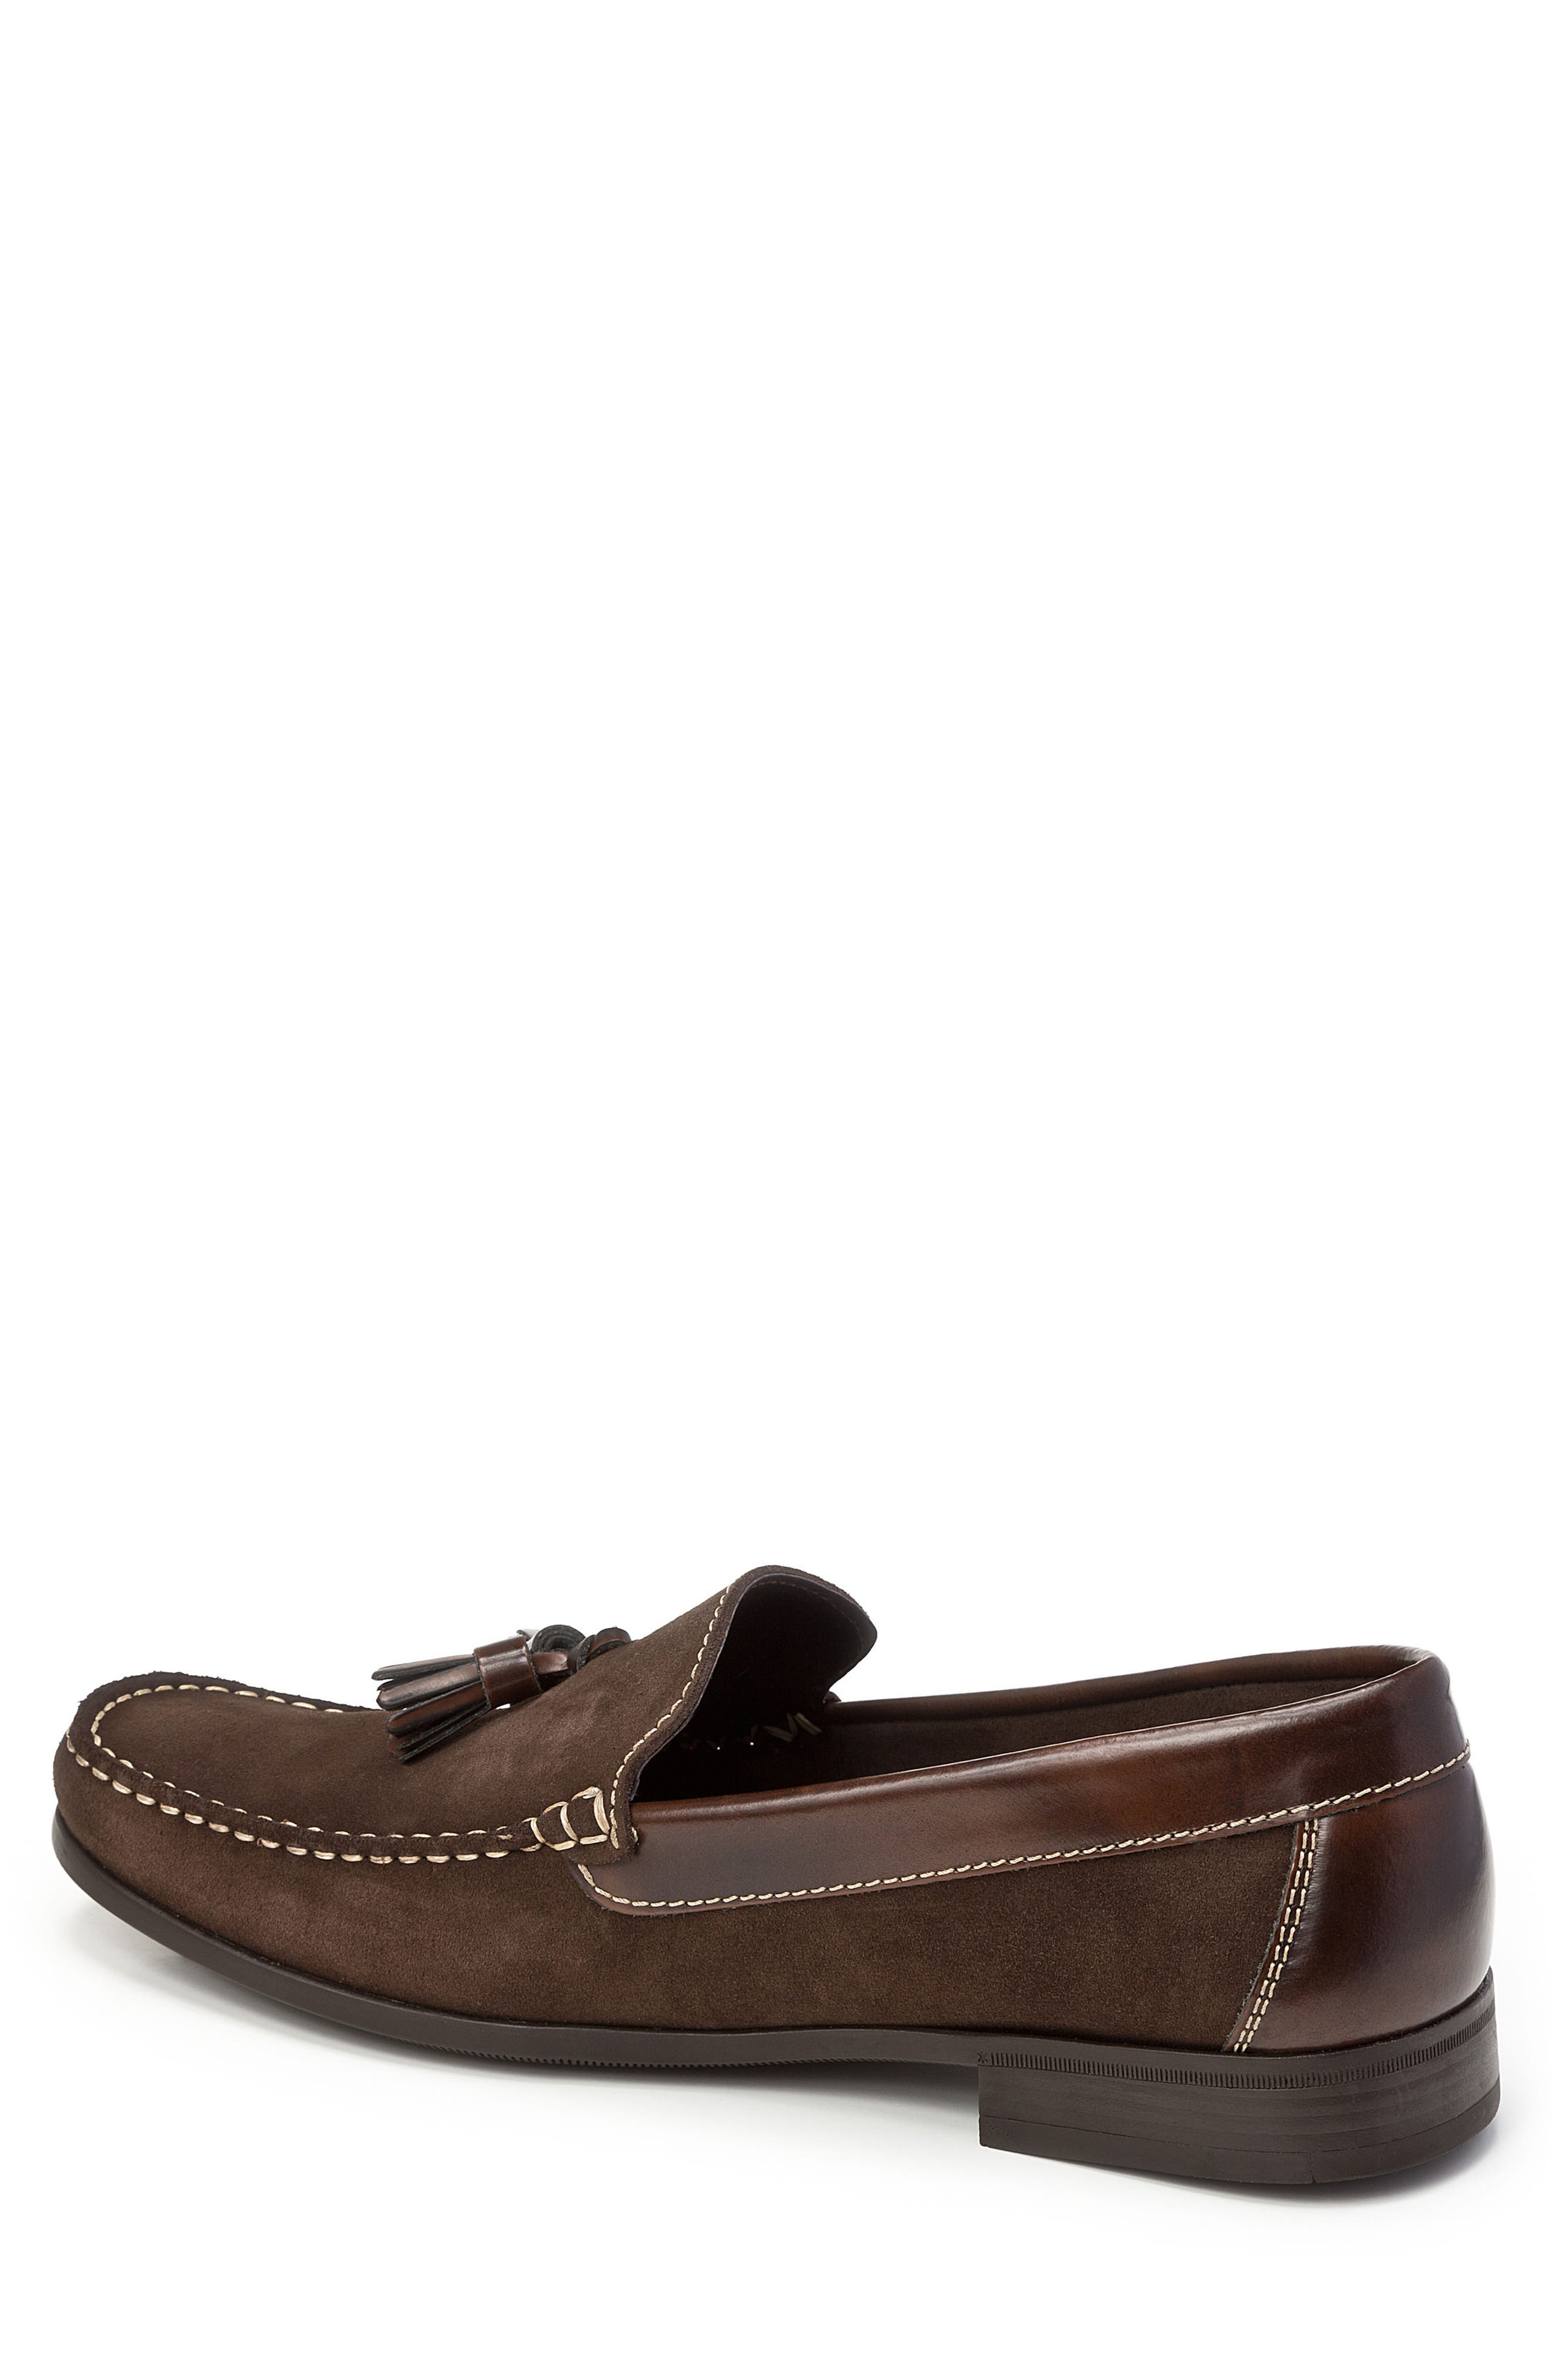 SANDRO MOSCOLONI,                             Hojas Tassel Loafer,                             Alternate thumbnail 2, color,                             BROWN LEATHER